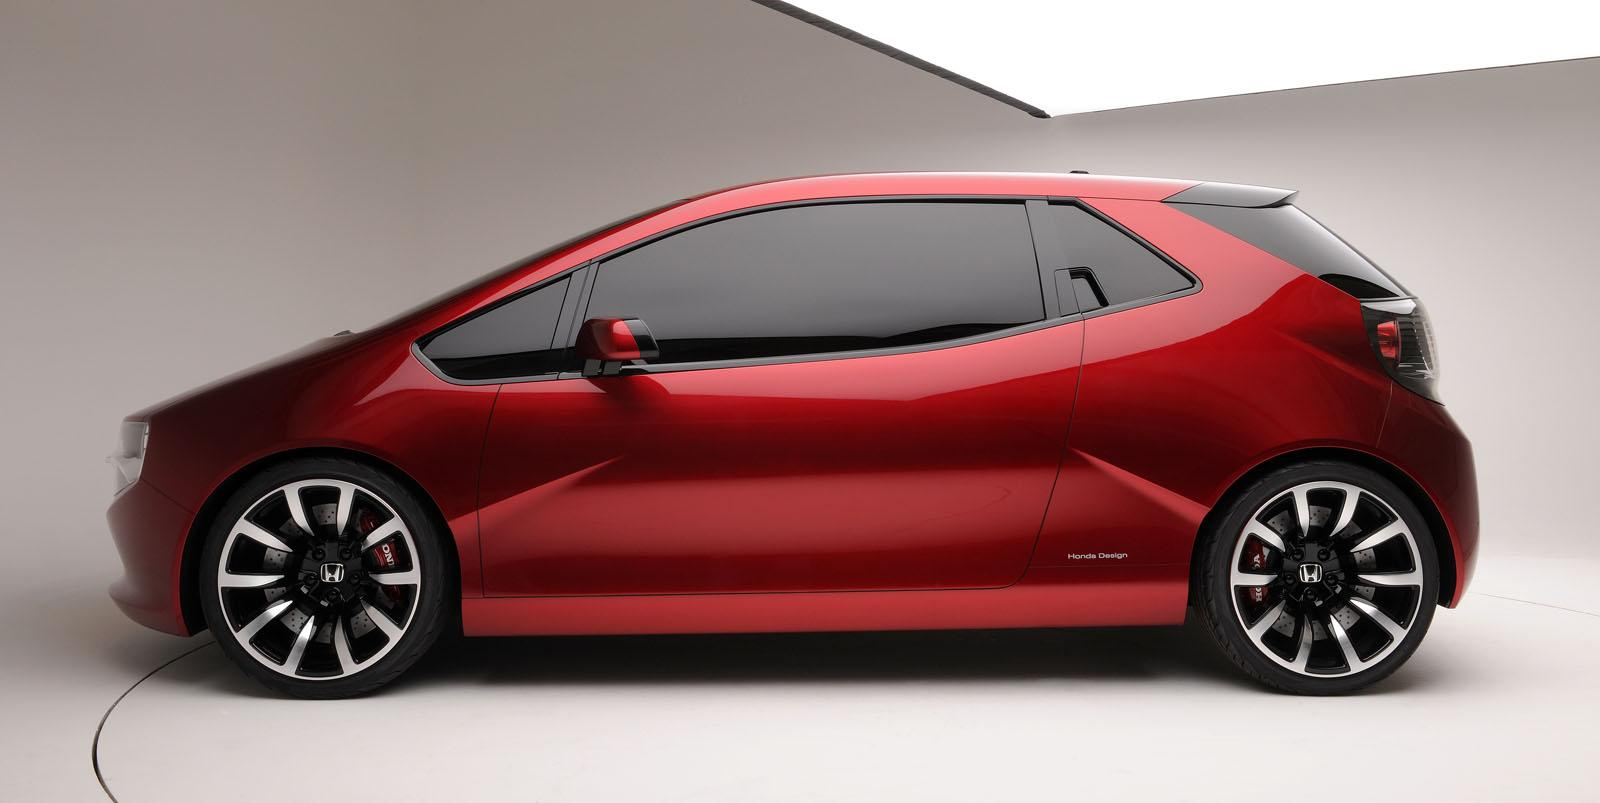 Honda Certified Pre Owned >> Honda surprises with Gear concept in Montreal - Autoblog